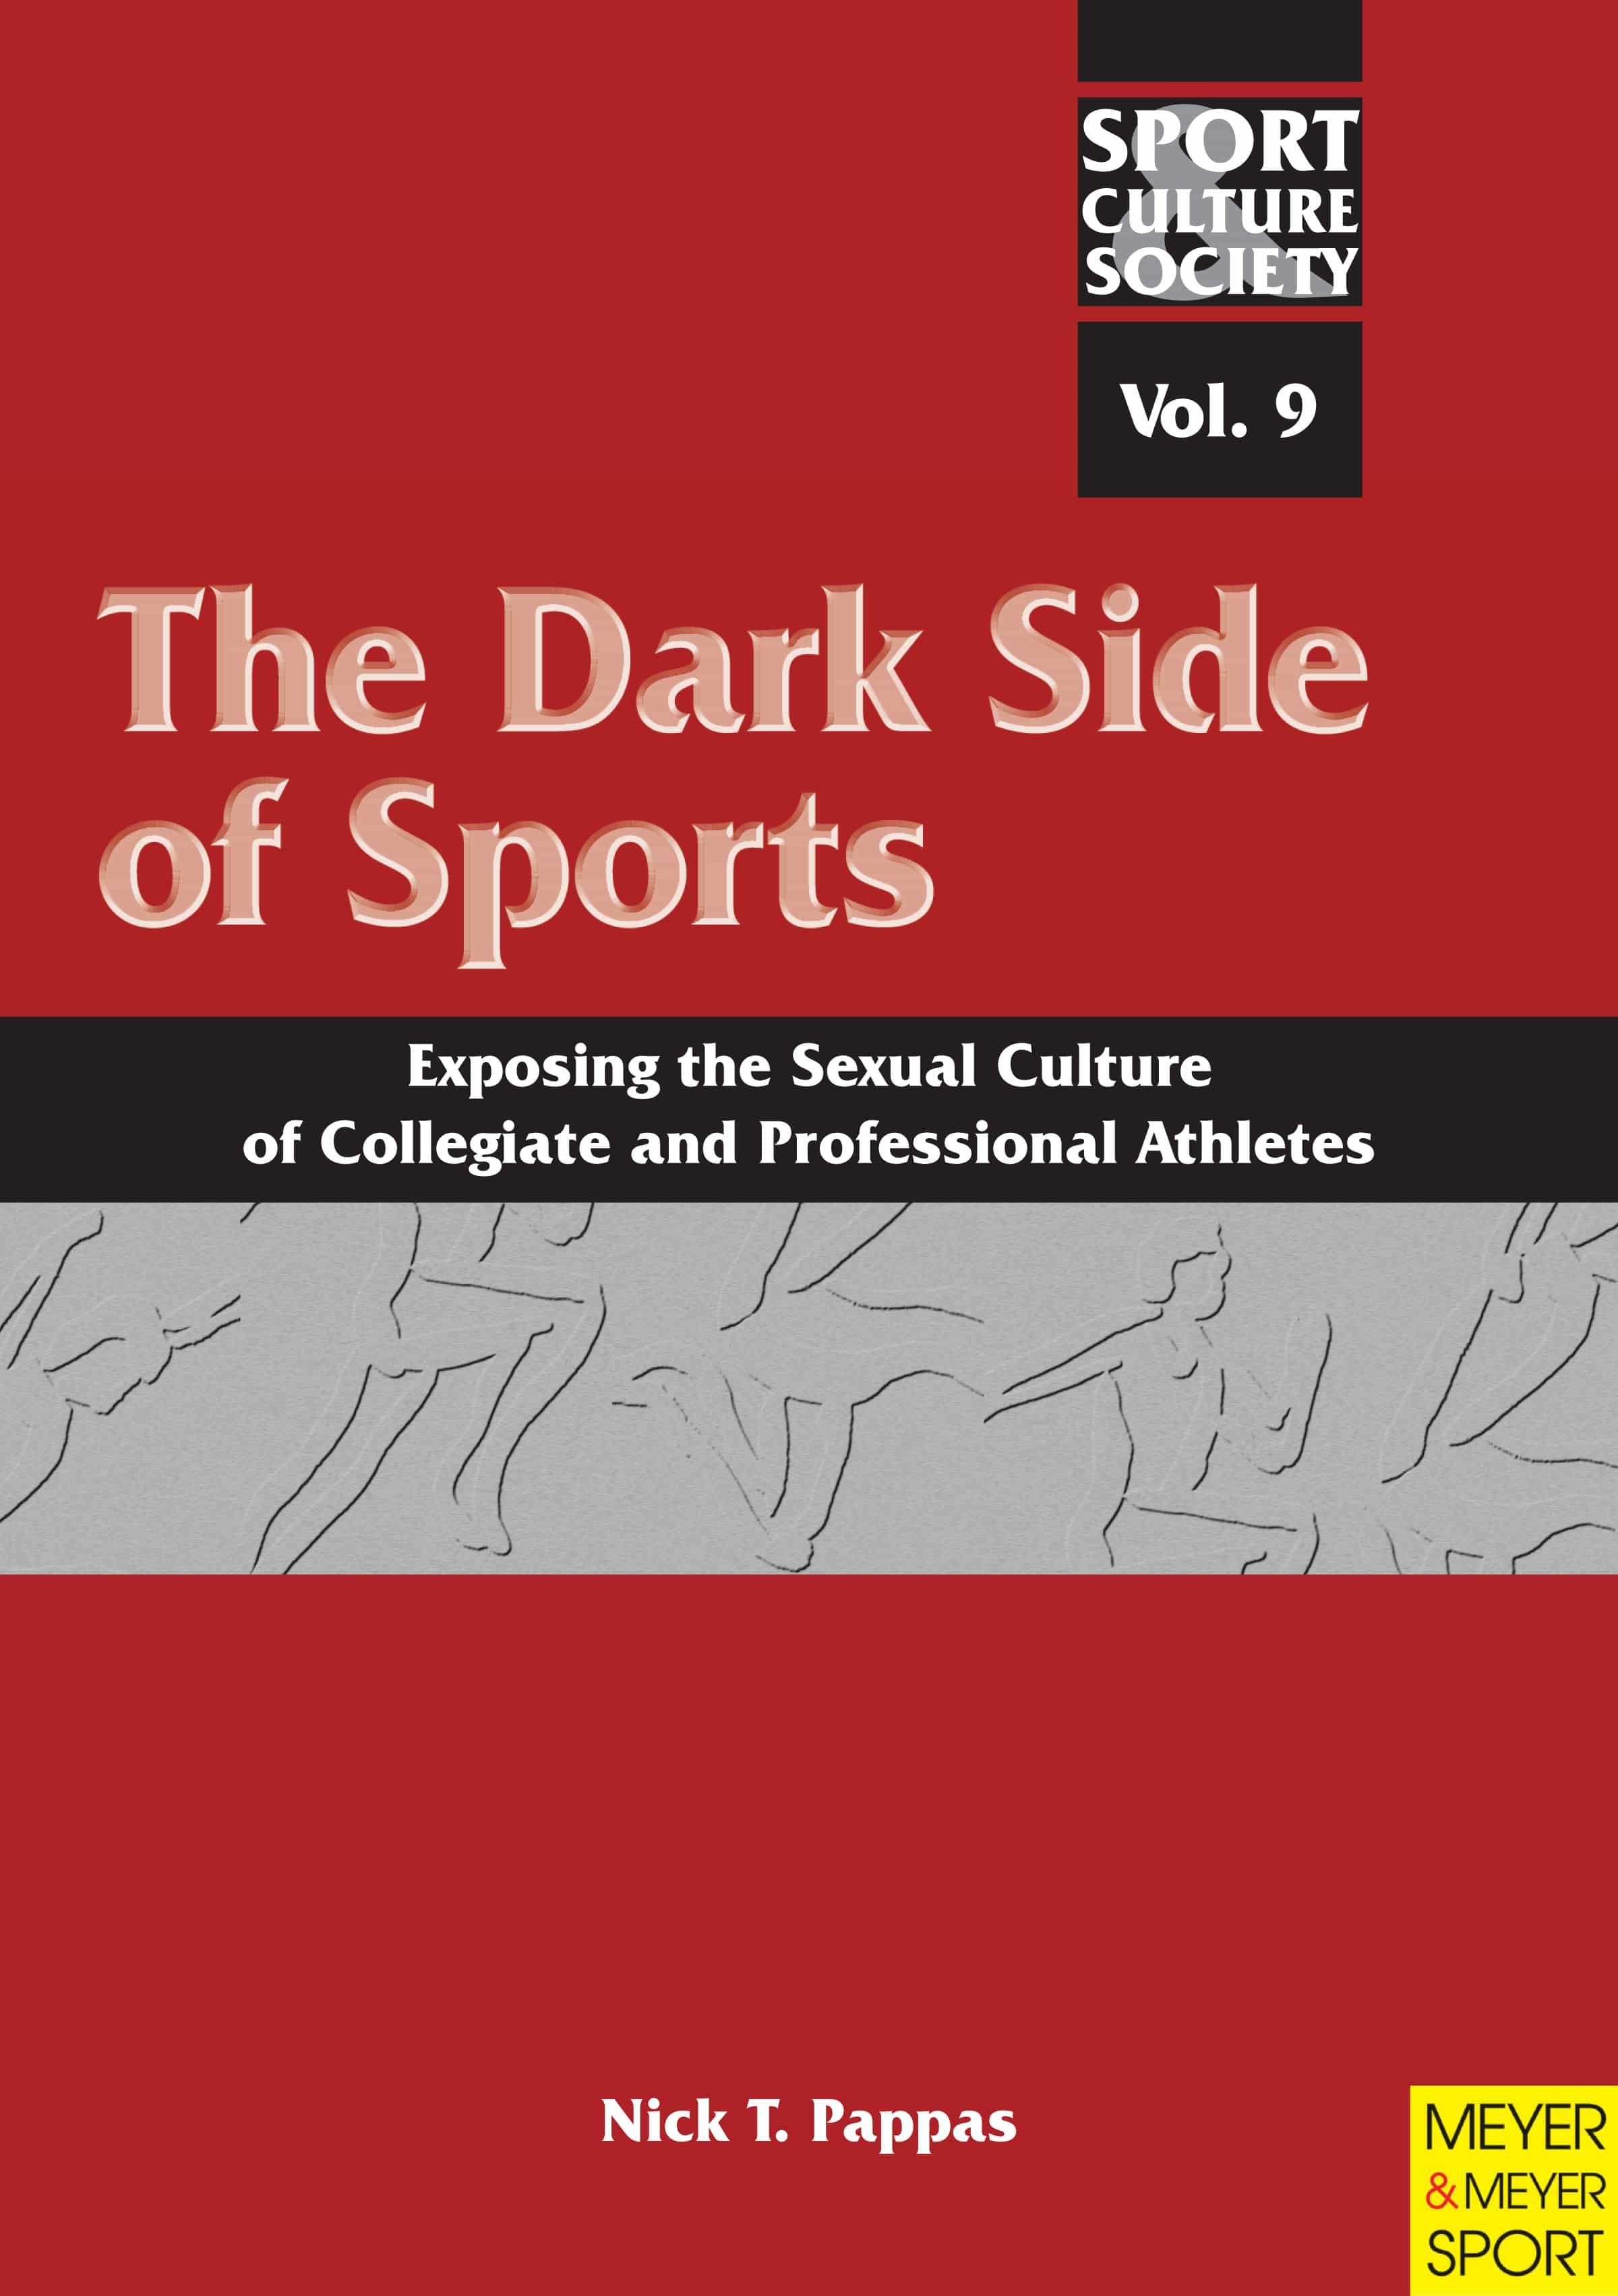 The Dark Side of Sports: Exposing the Sexual Culture of Collegiate and Professional Athletes (Sport, Culture & Society Book 9) (English Edition)